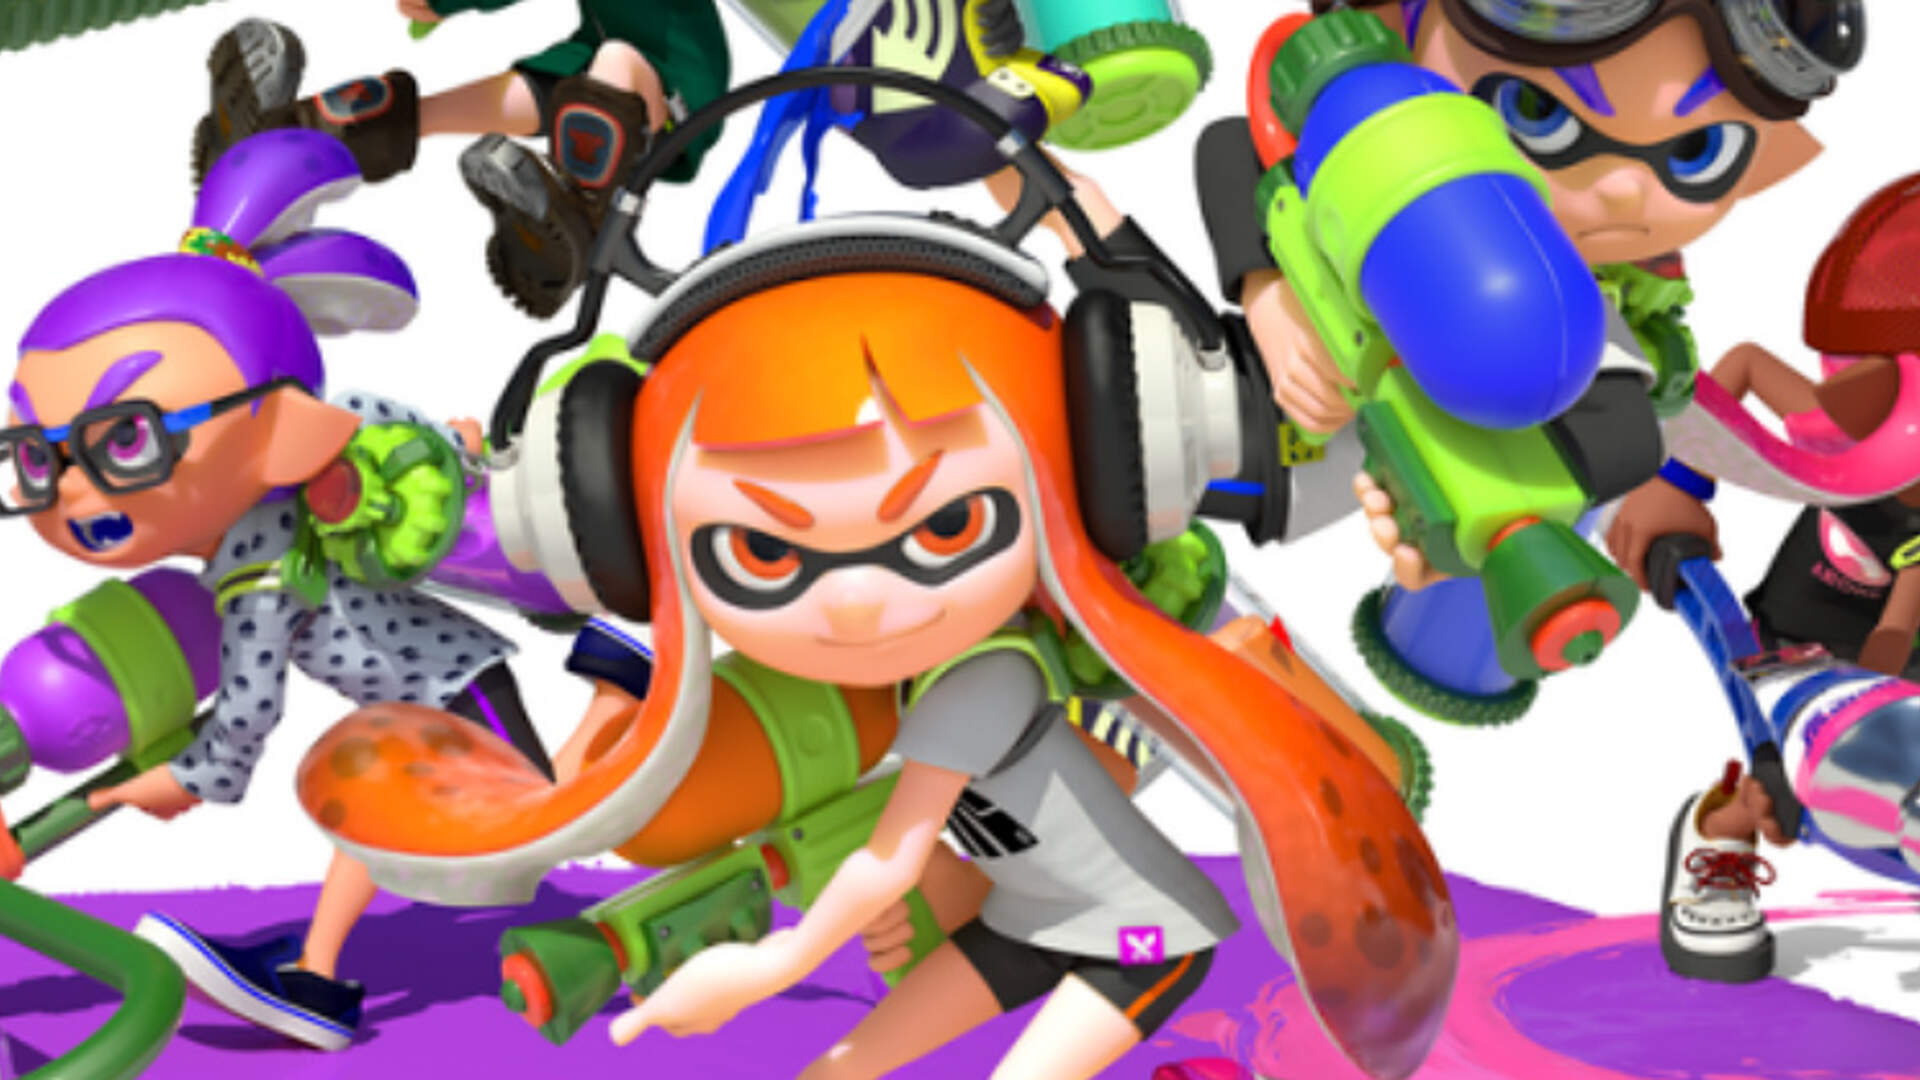 Nintendo's First Quarter is Strong, Thanks to Splatoon and Amiibo